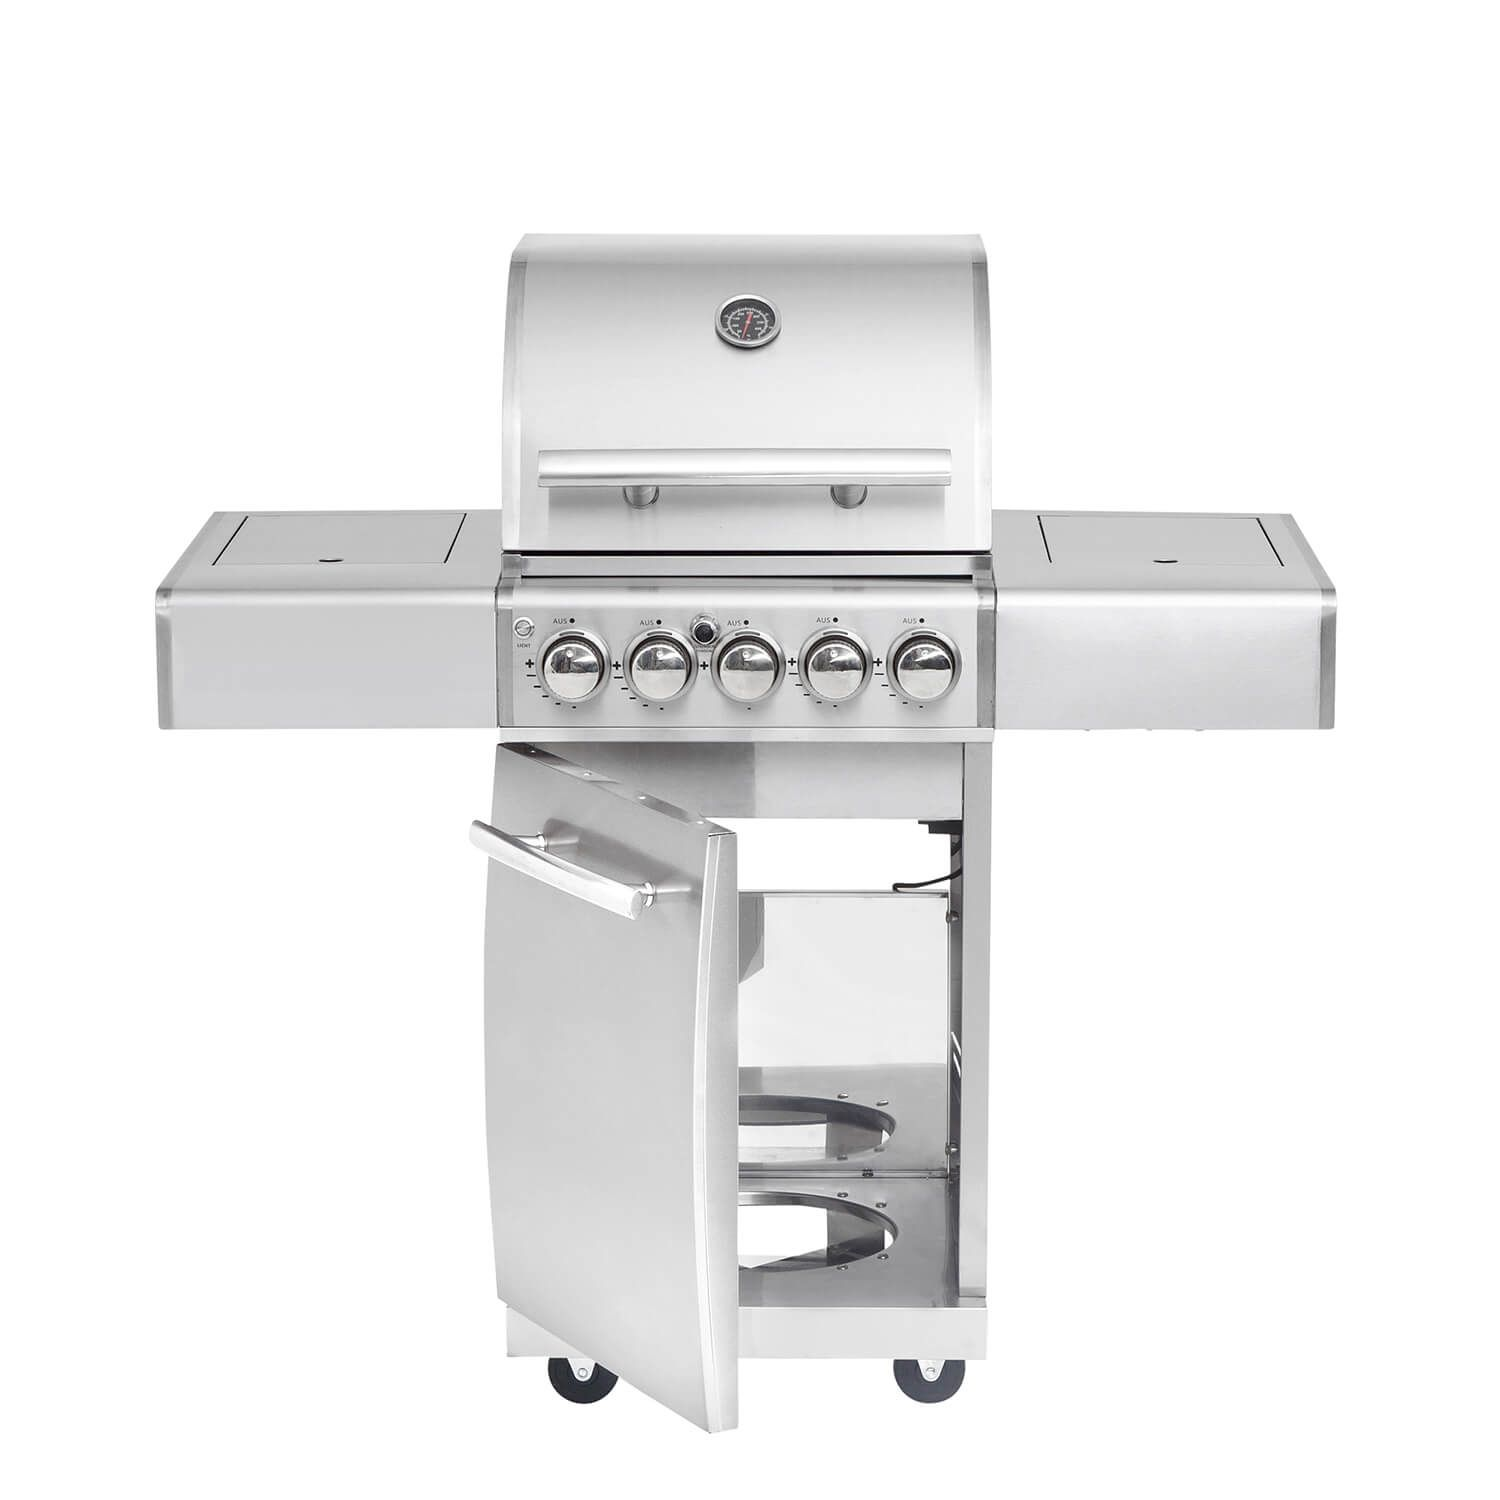 Top Line All Grill Chef S Volledelstahl Gas Grill All Grill Air System Gesamtleistung 17 7 Kw 2 Flammig Abmessung Aufg Gasgrill Edelstahl Grill Grillen